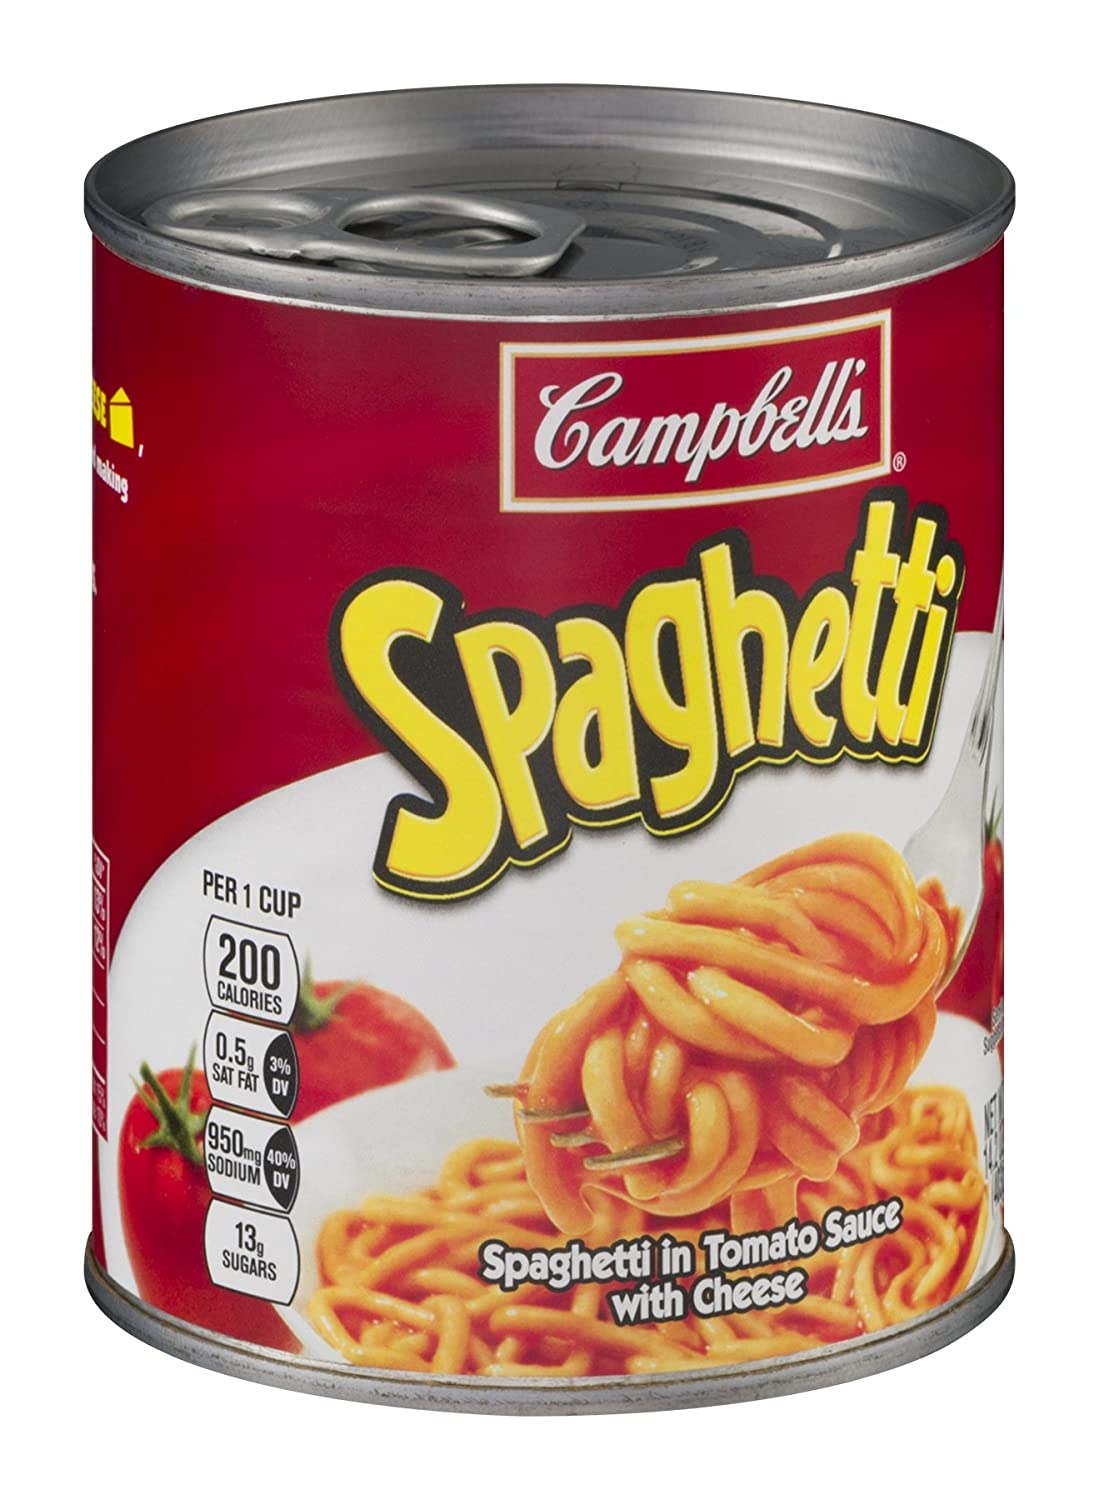 Amazon.com : Campbell's, Spaghetti in Tomato Sauce with Cheese ...